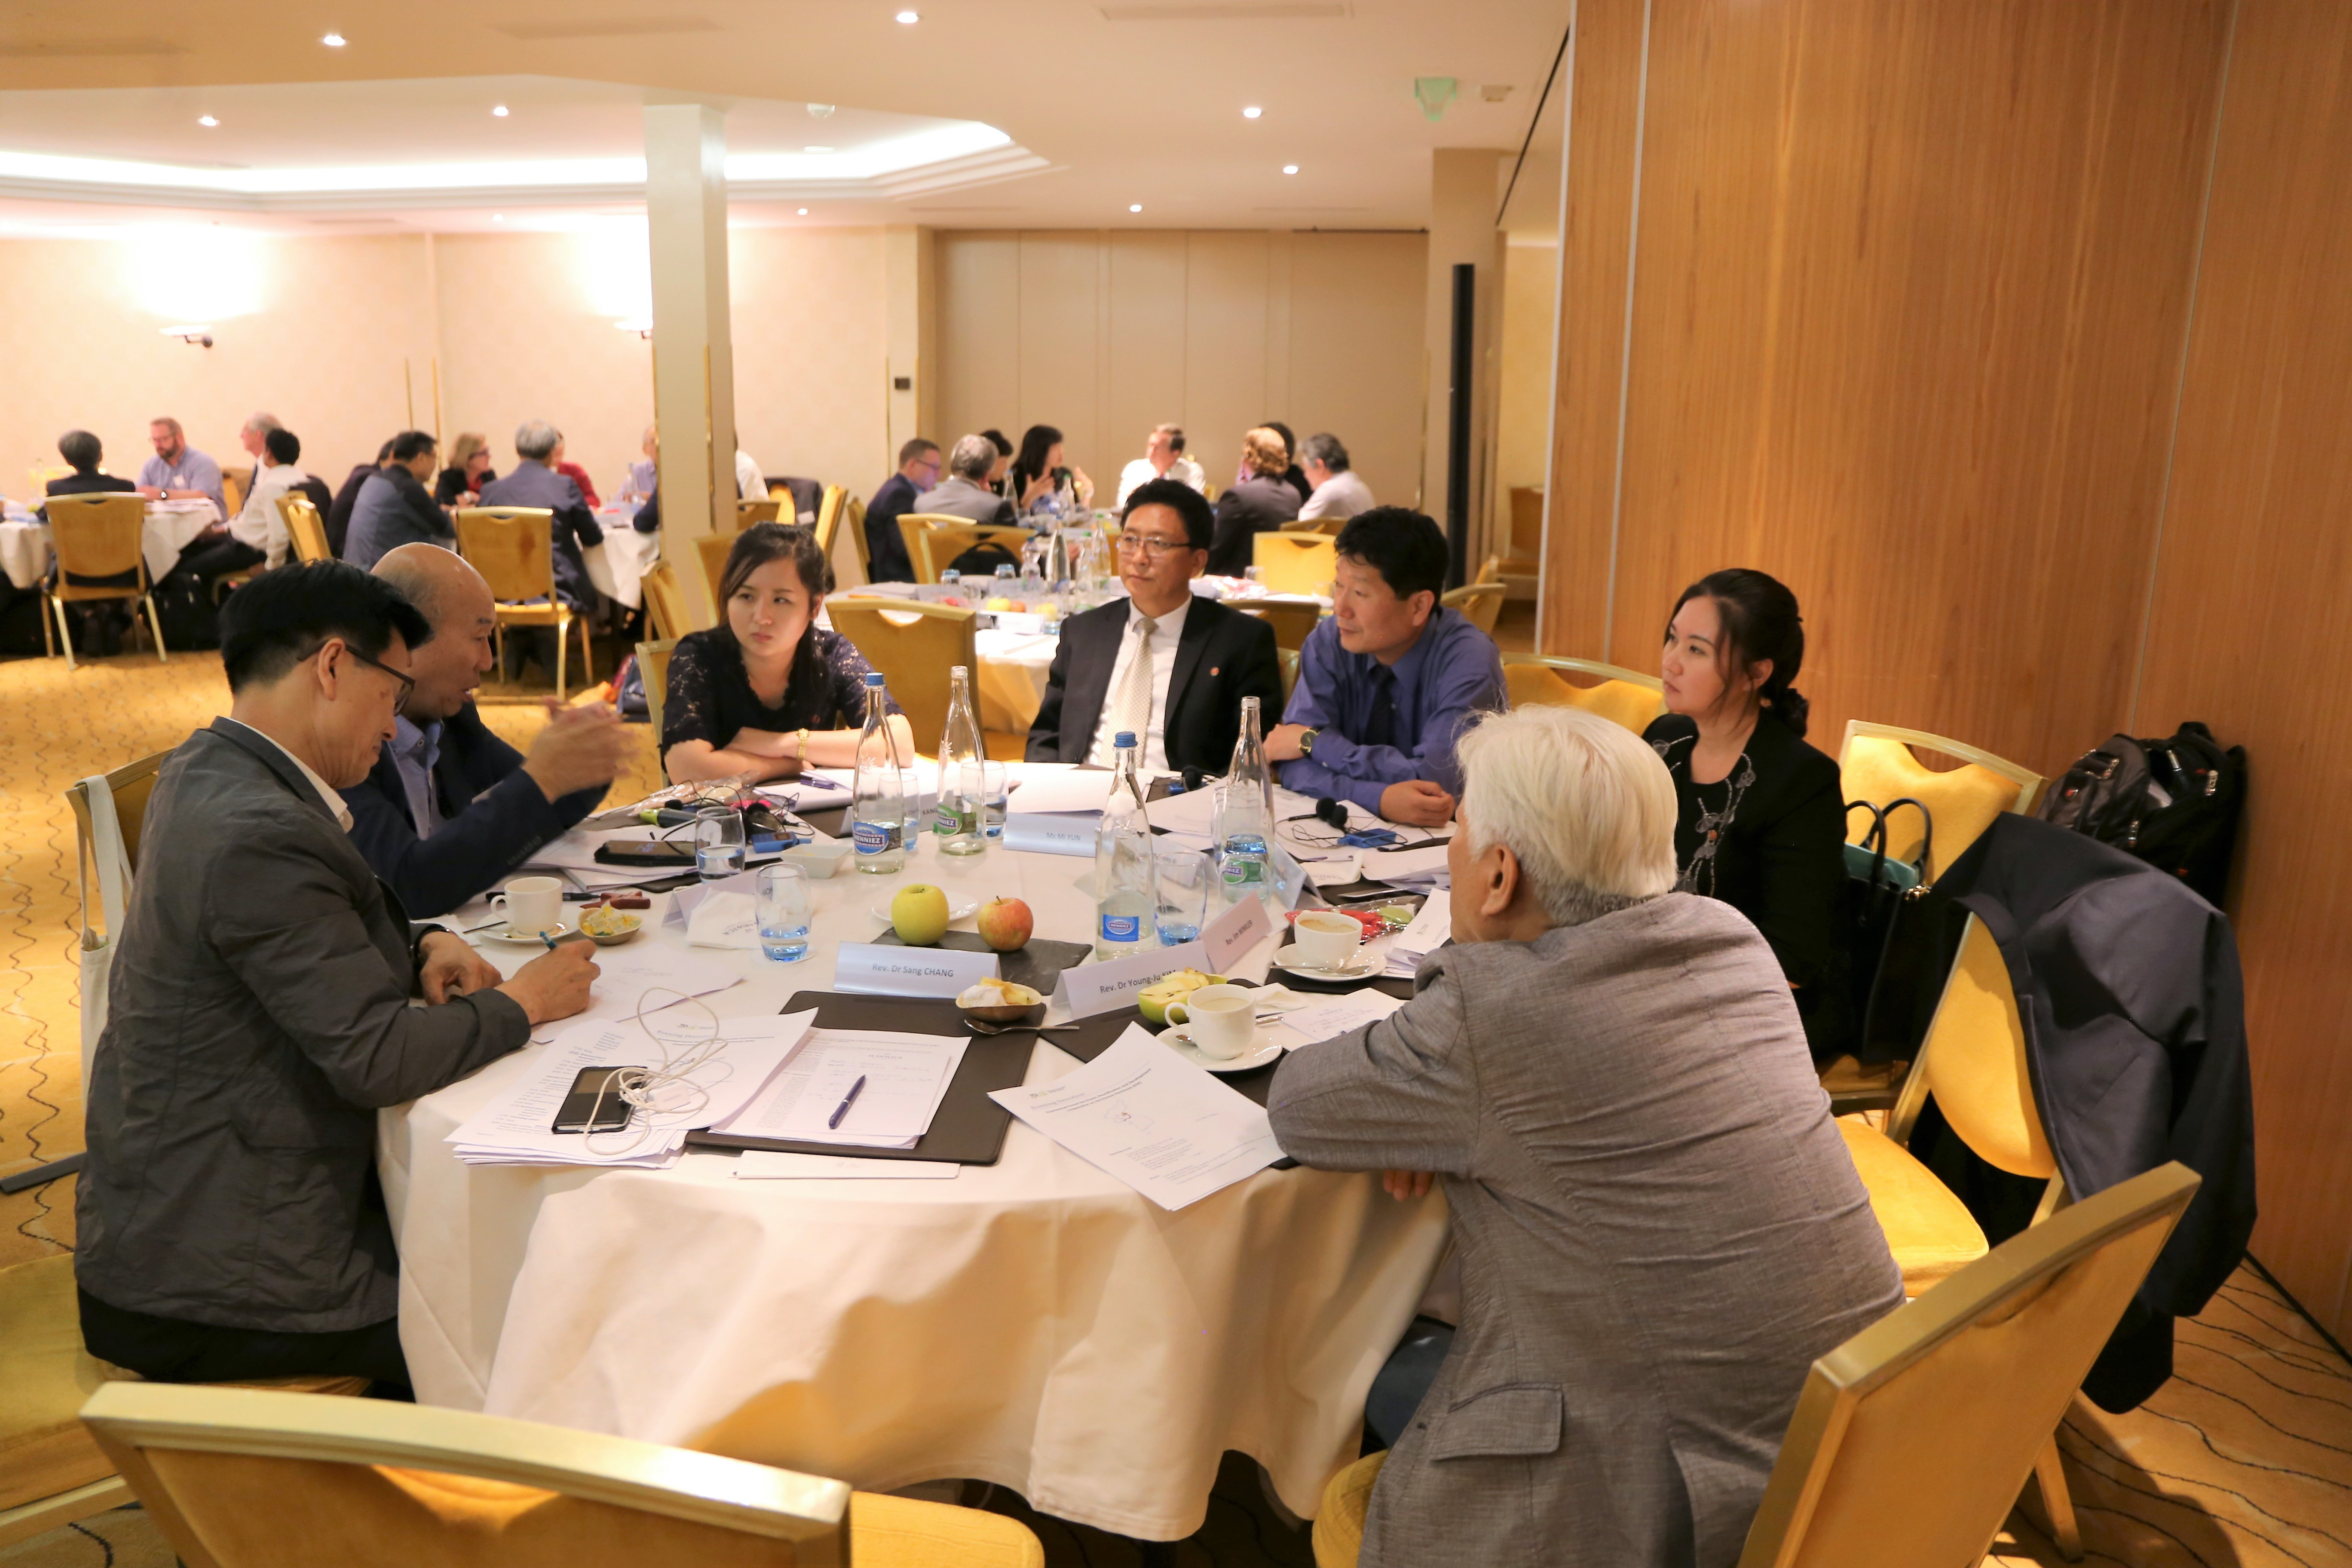 Delegates from North and South Korea discuss potential ways to work with the Panmunjom Declaration.